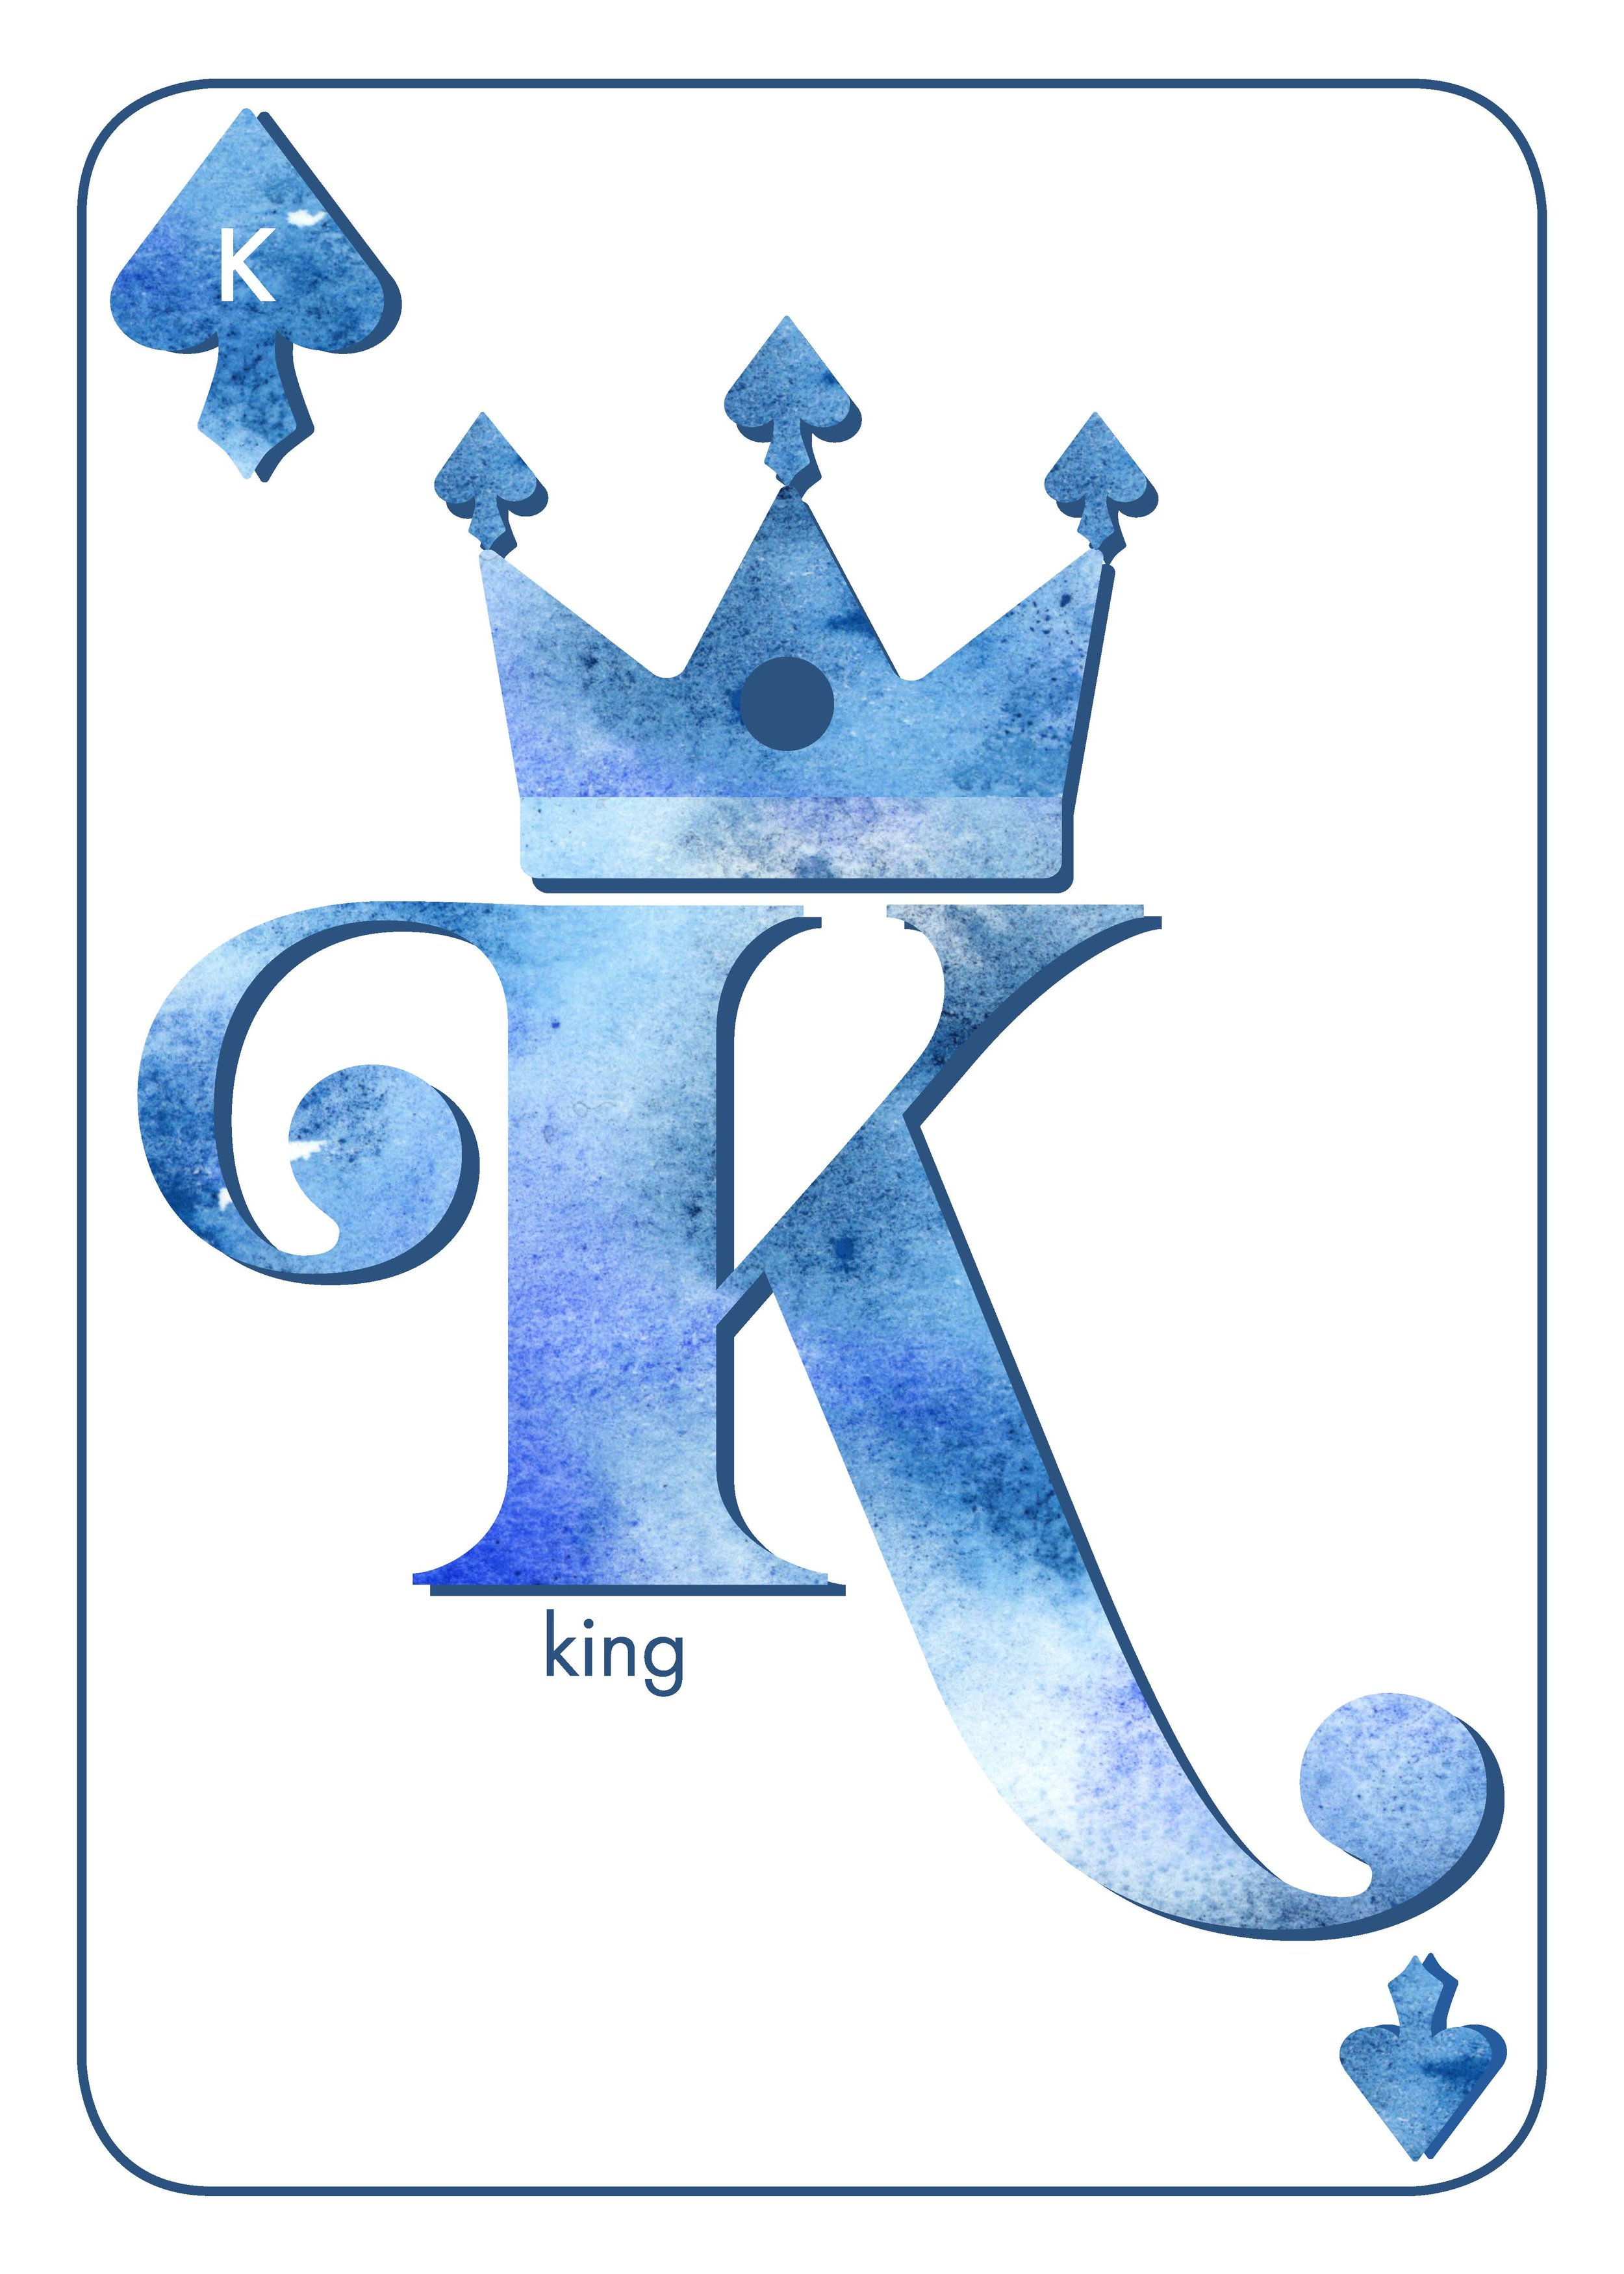 Queen&KingCards_Page_2.jpg